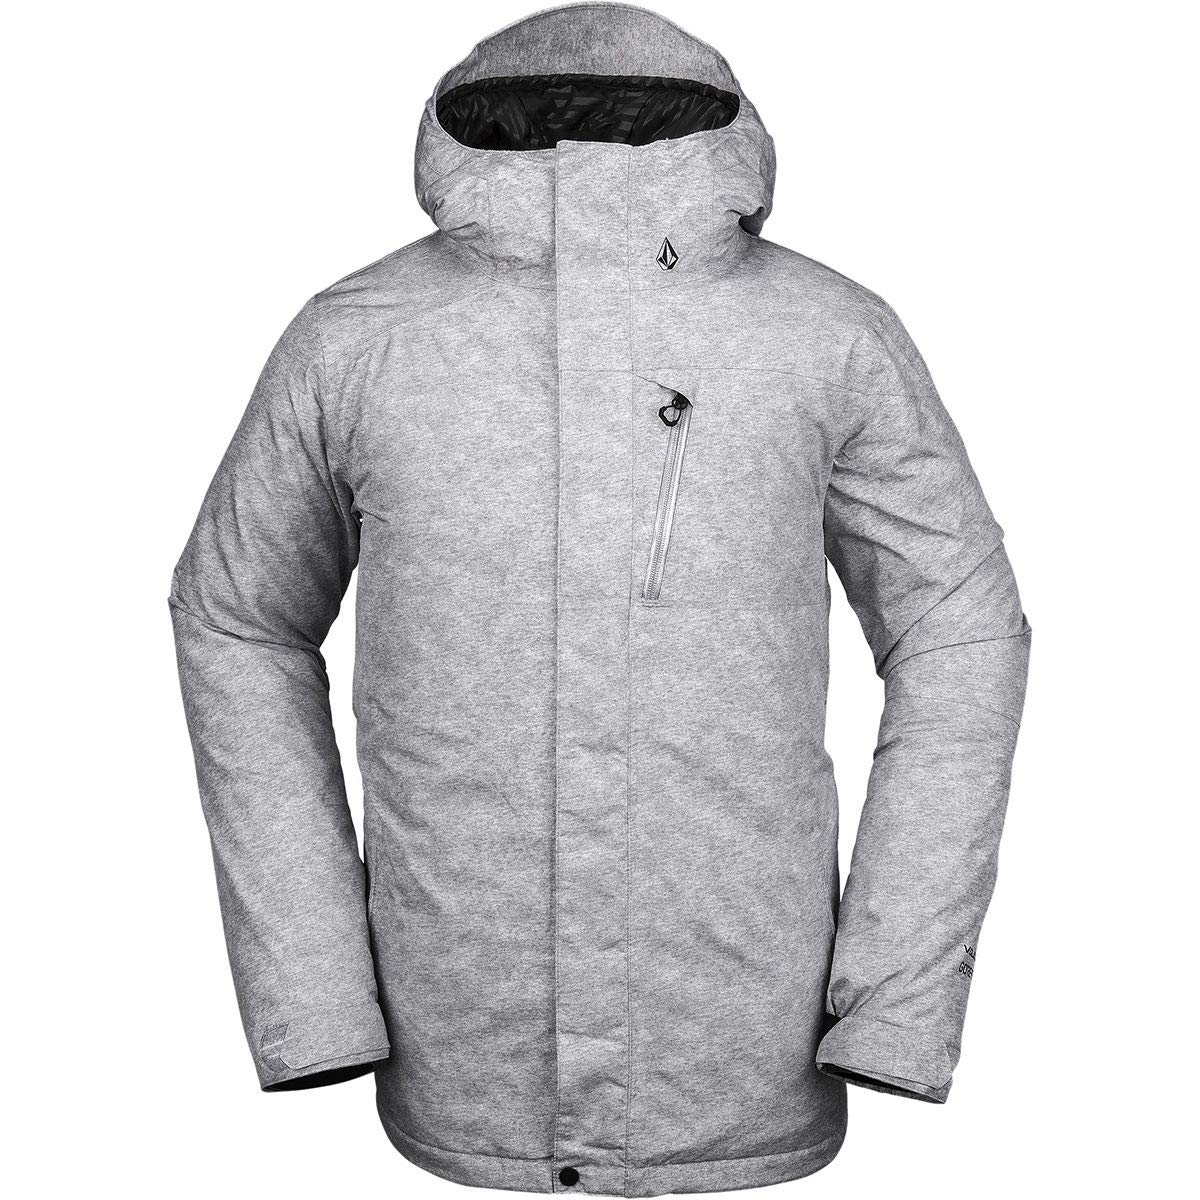 Volcom Men's L Insulated Gore-tex Breathable Snow Jacket, Heather Grey, Medium by Volcom